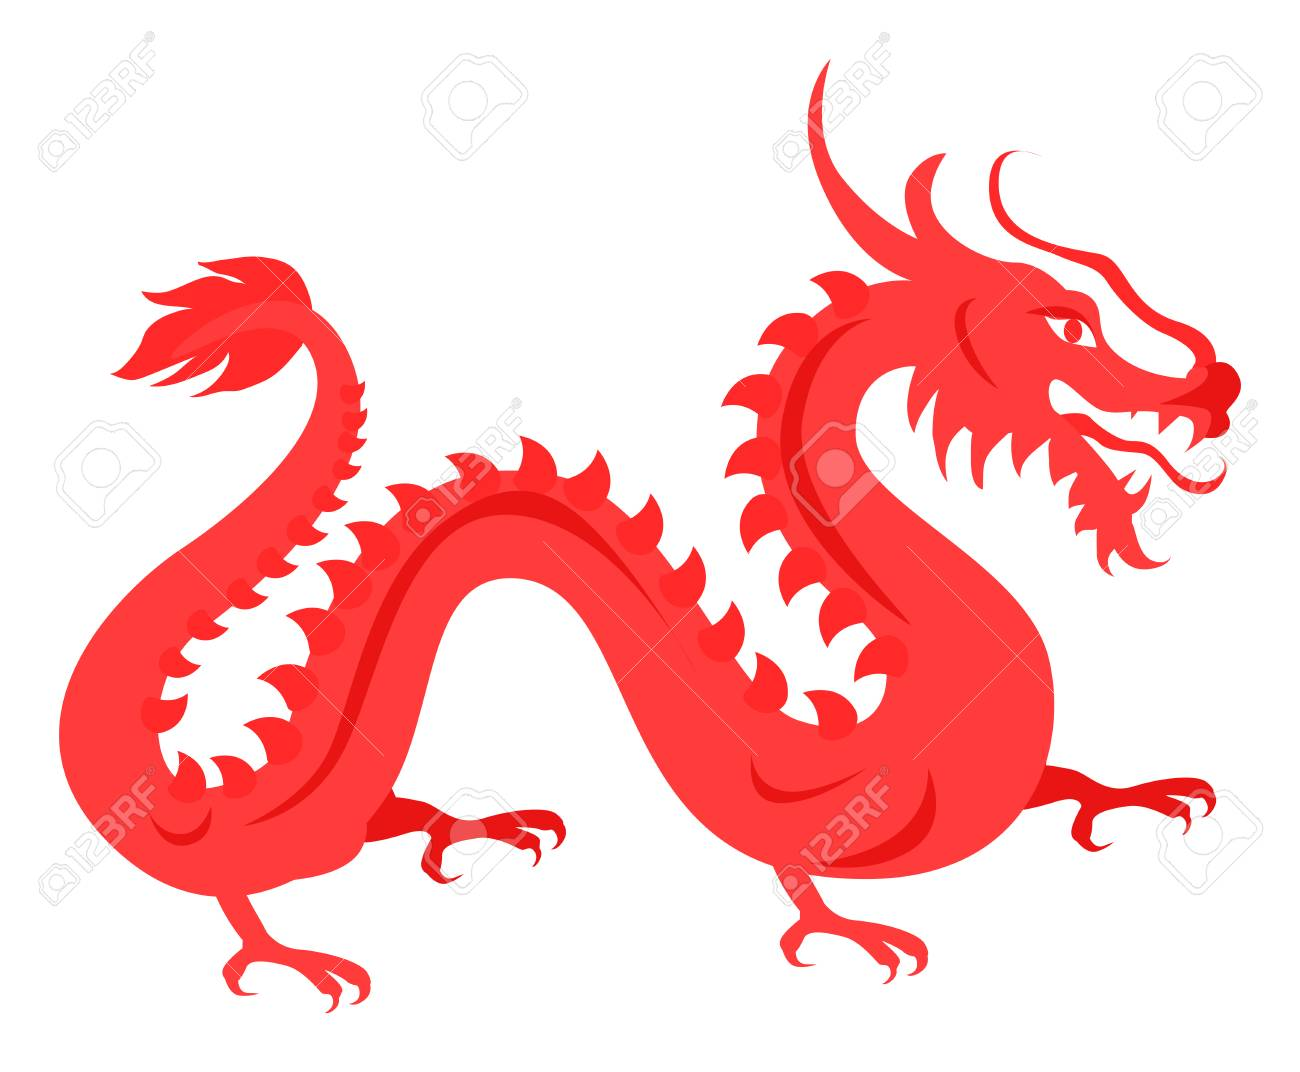 Dragon Rouge Isole Sur Blanc Symbole Chinois Clip Art Libres De